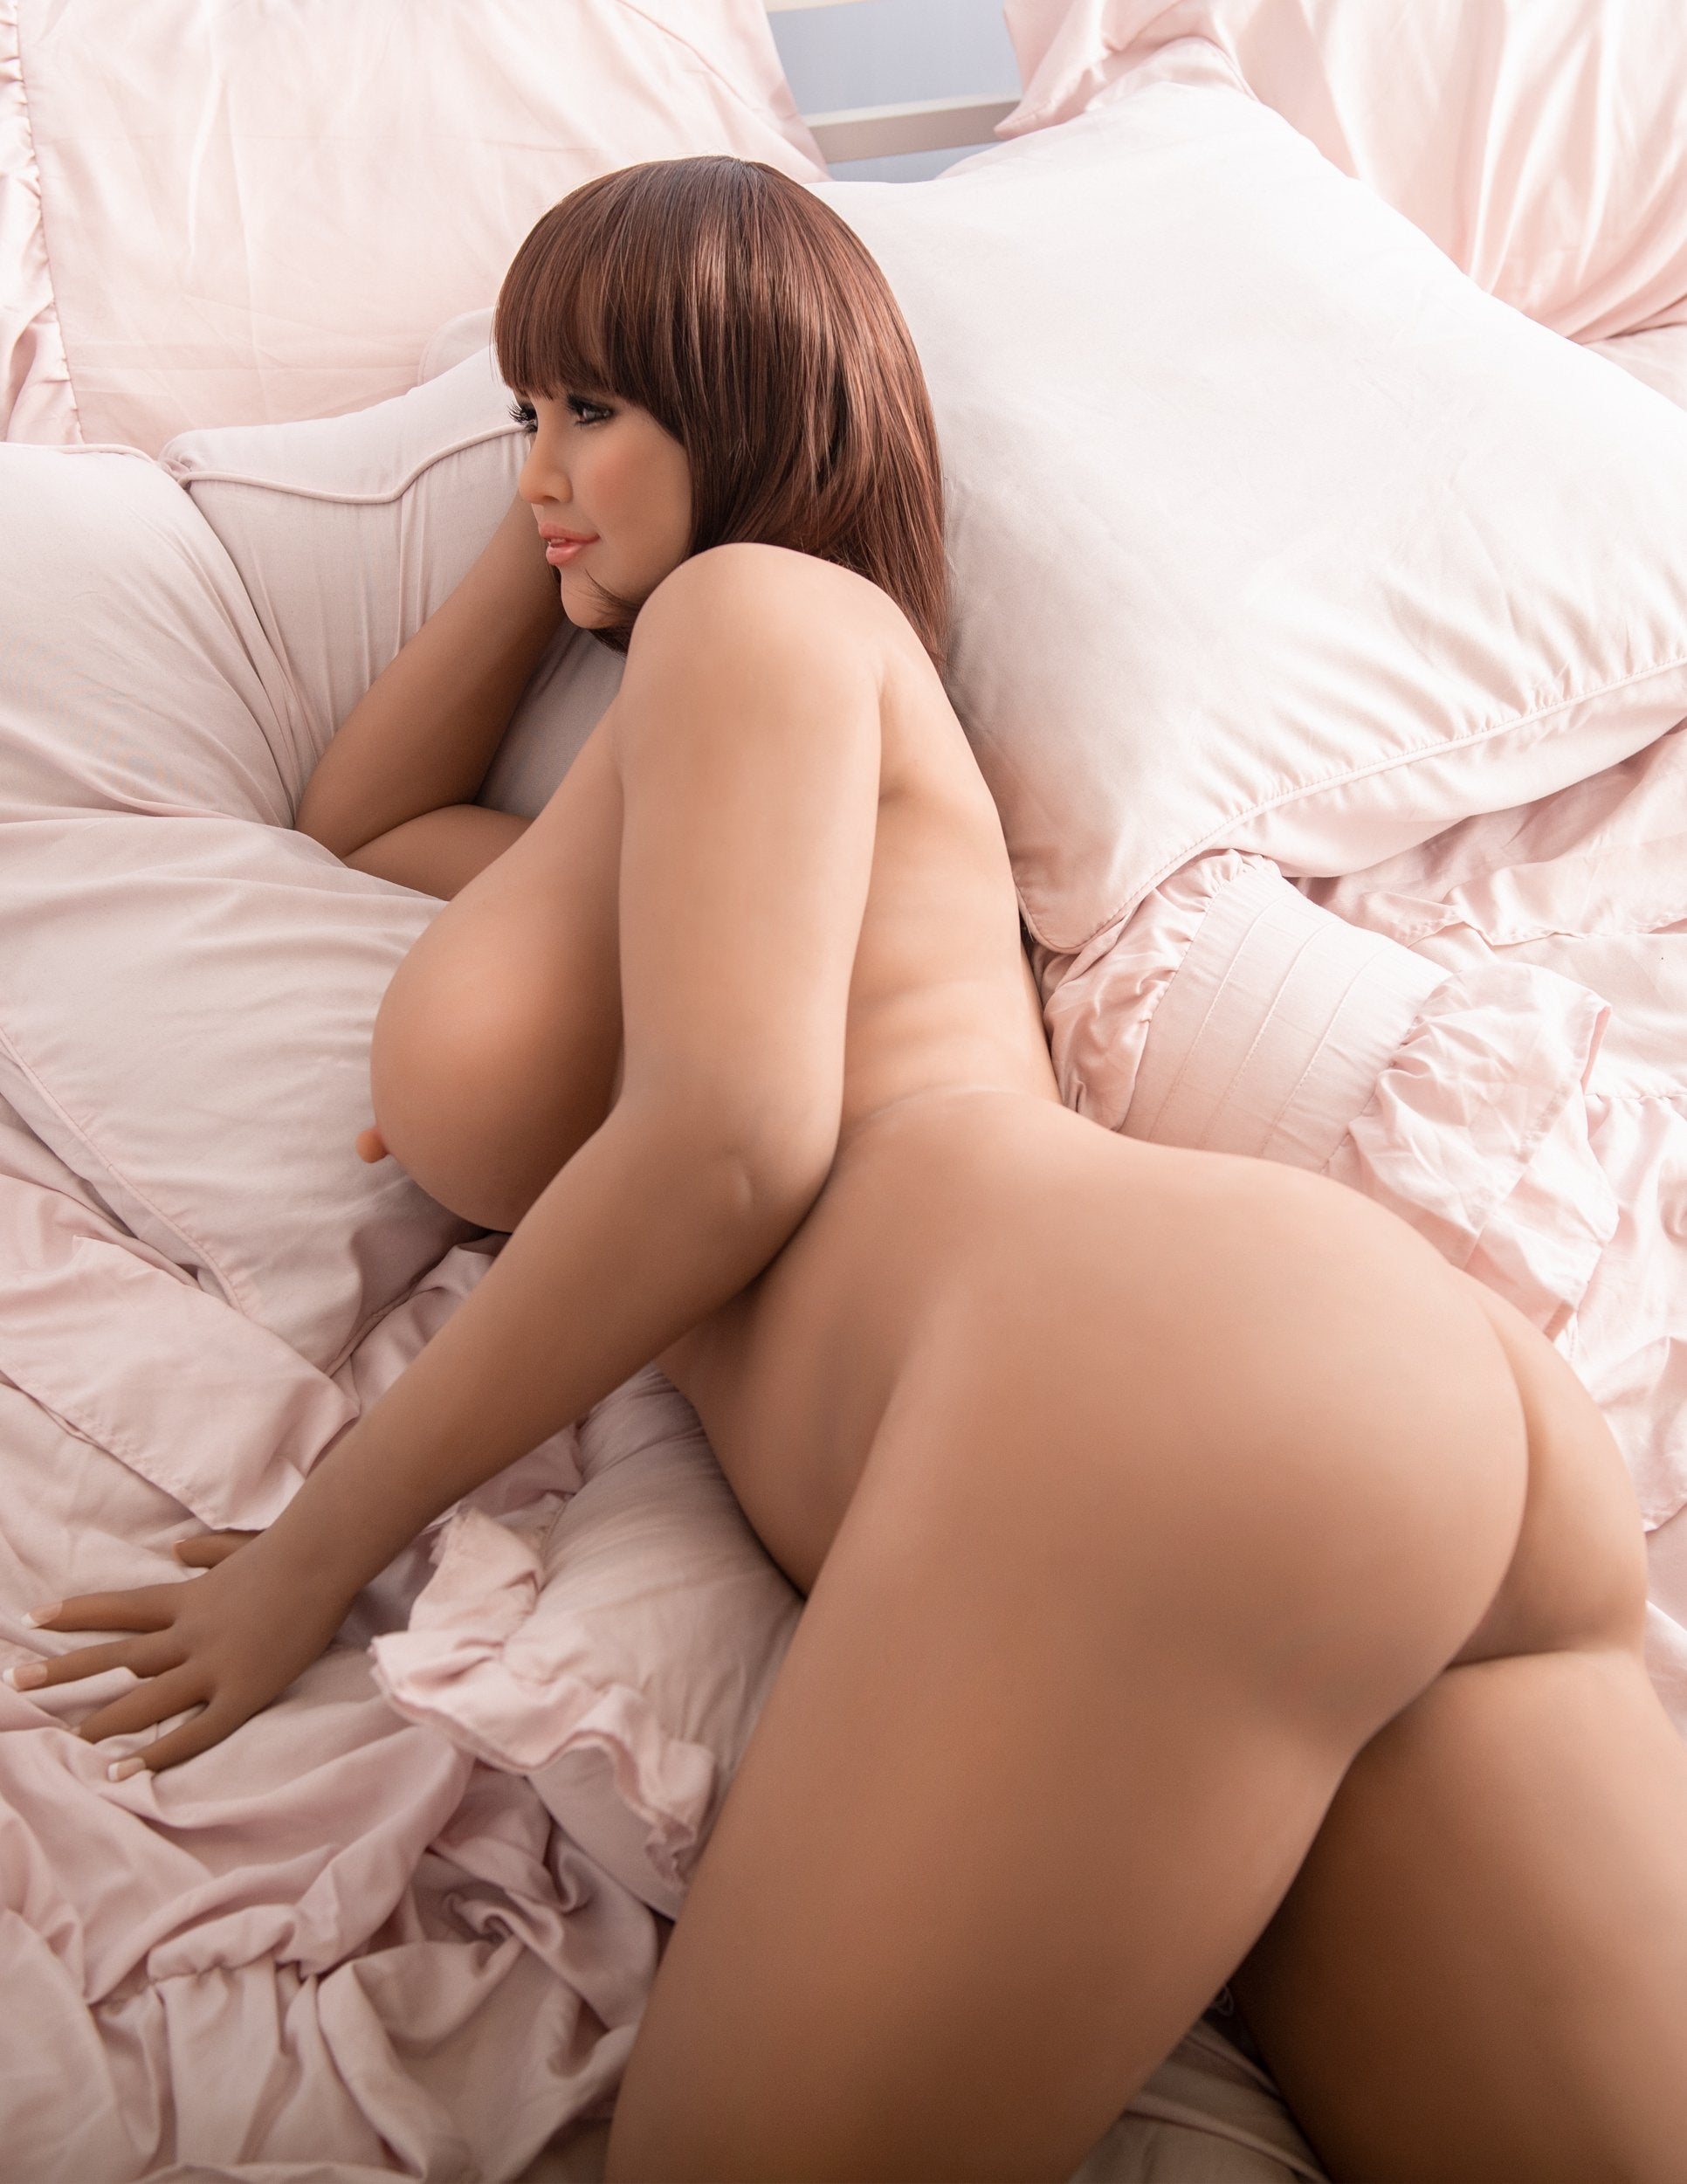 Ultimate Fantasy Dolls - Mia laying naked on a bed